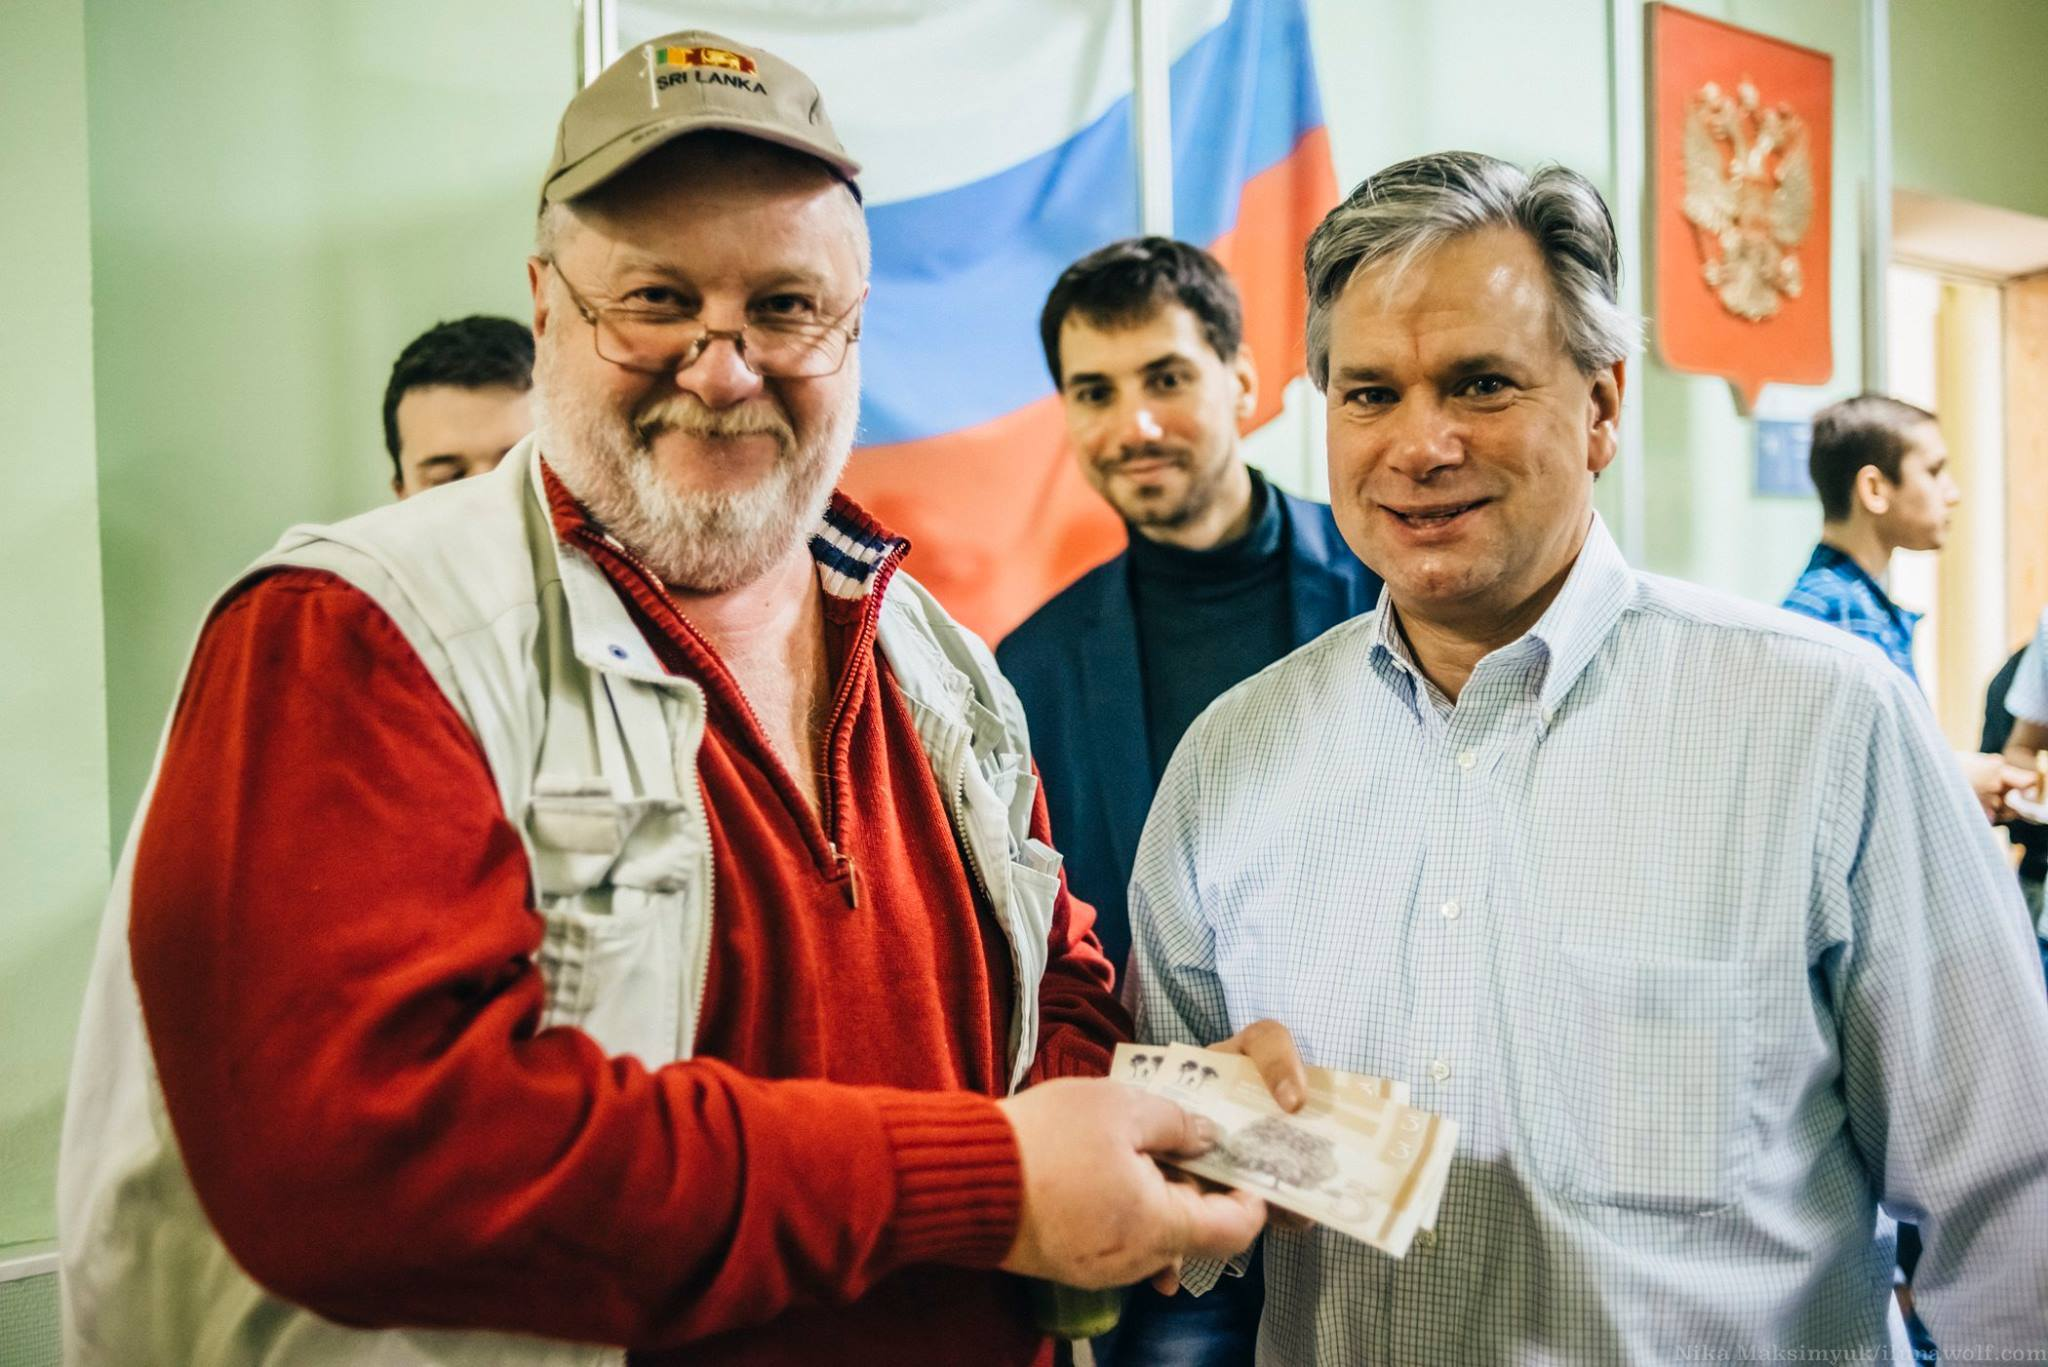 Shlyapnikov has been trying to create a local economic model for his village that will be more effective and more just.